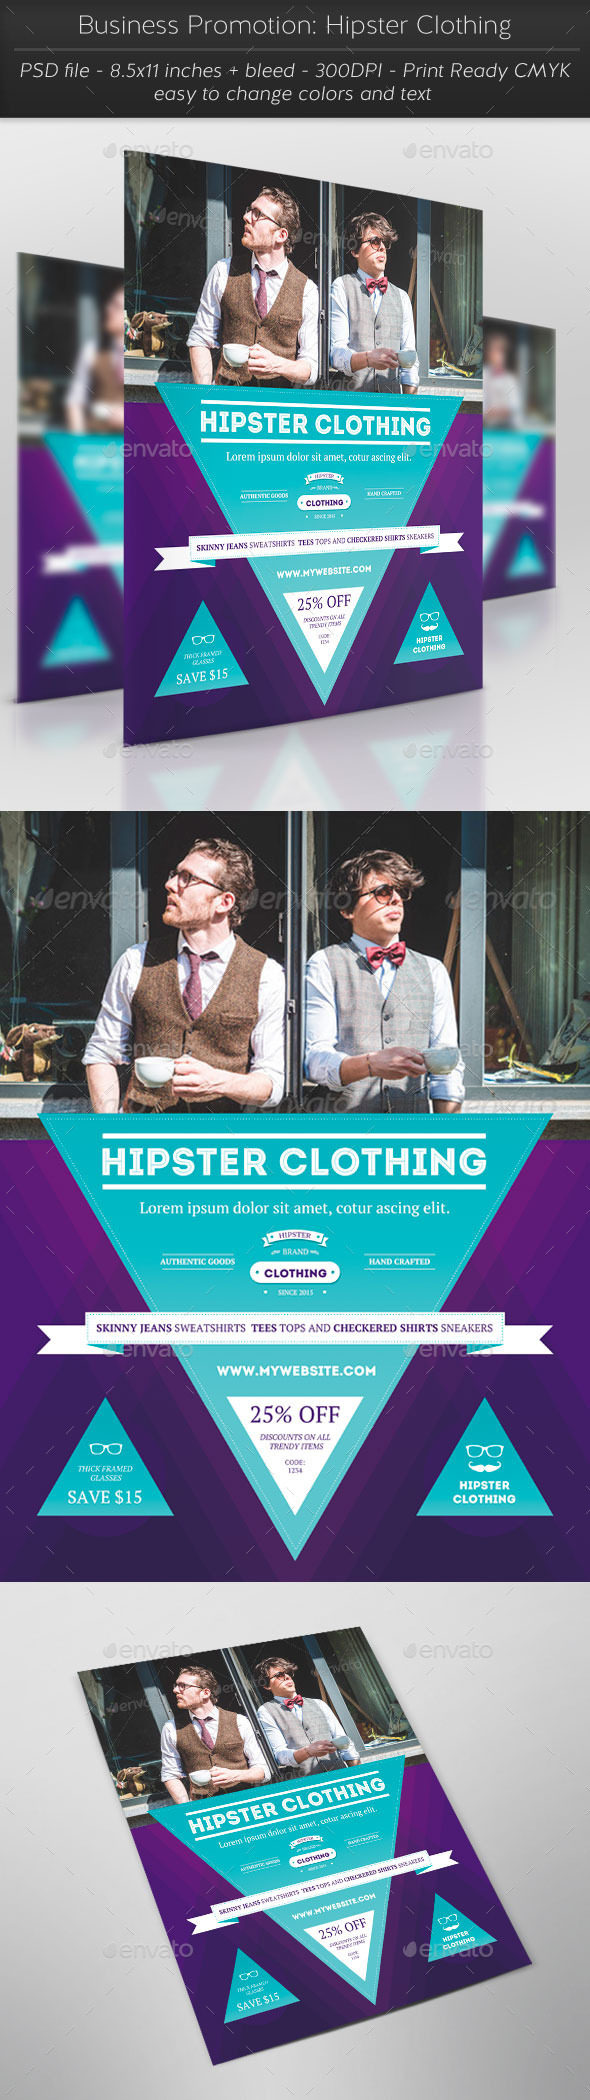 GraphicRiver Business Promotion Hipster Clothing 11324798